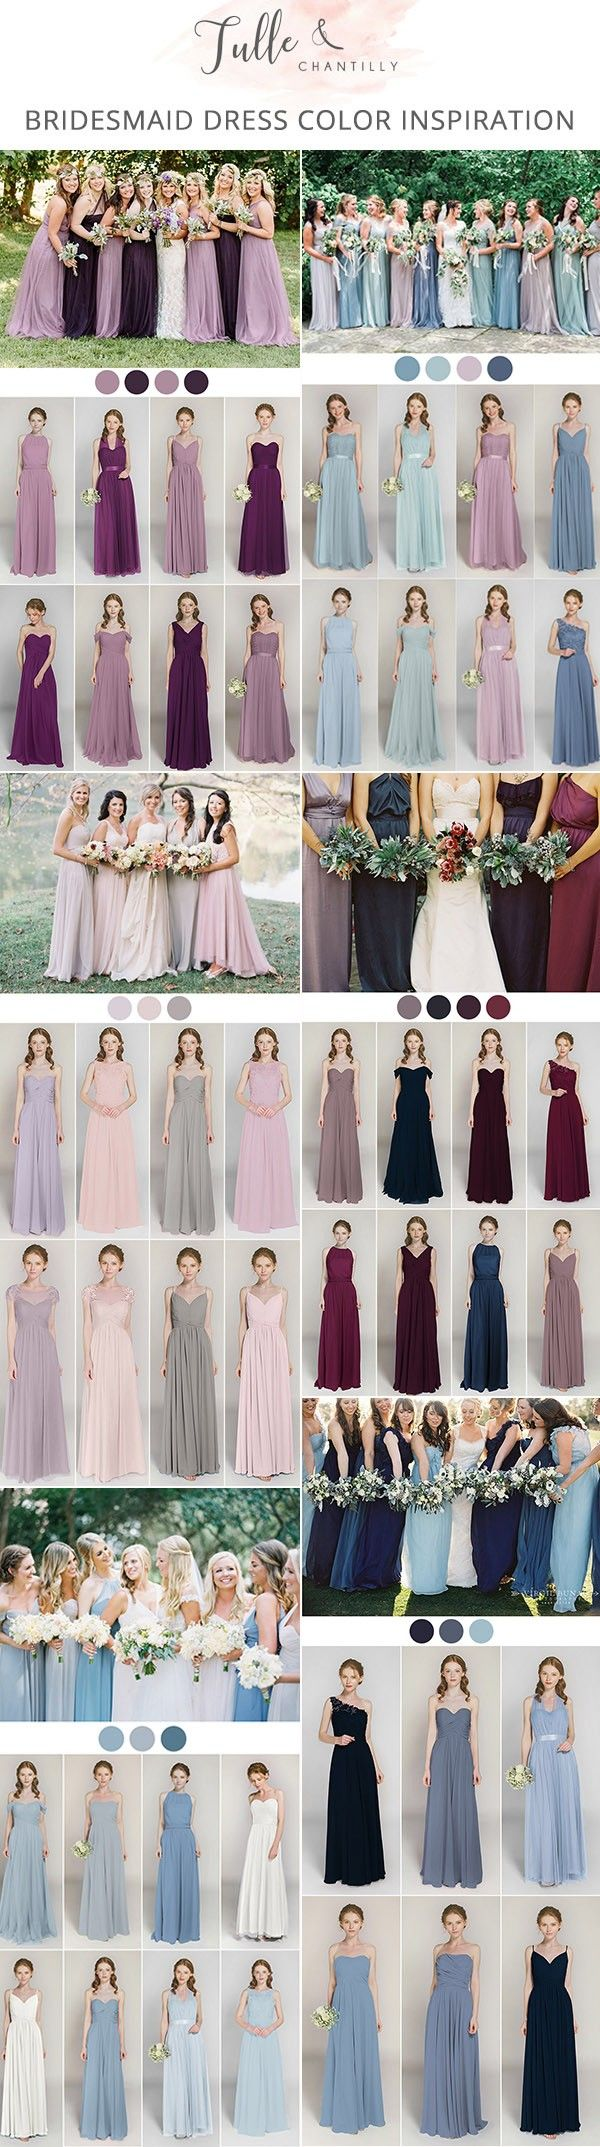 mix and match bridesmaid dresses inspired by popular wedding colors